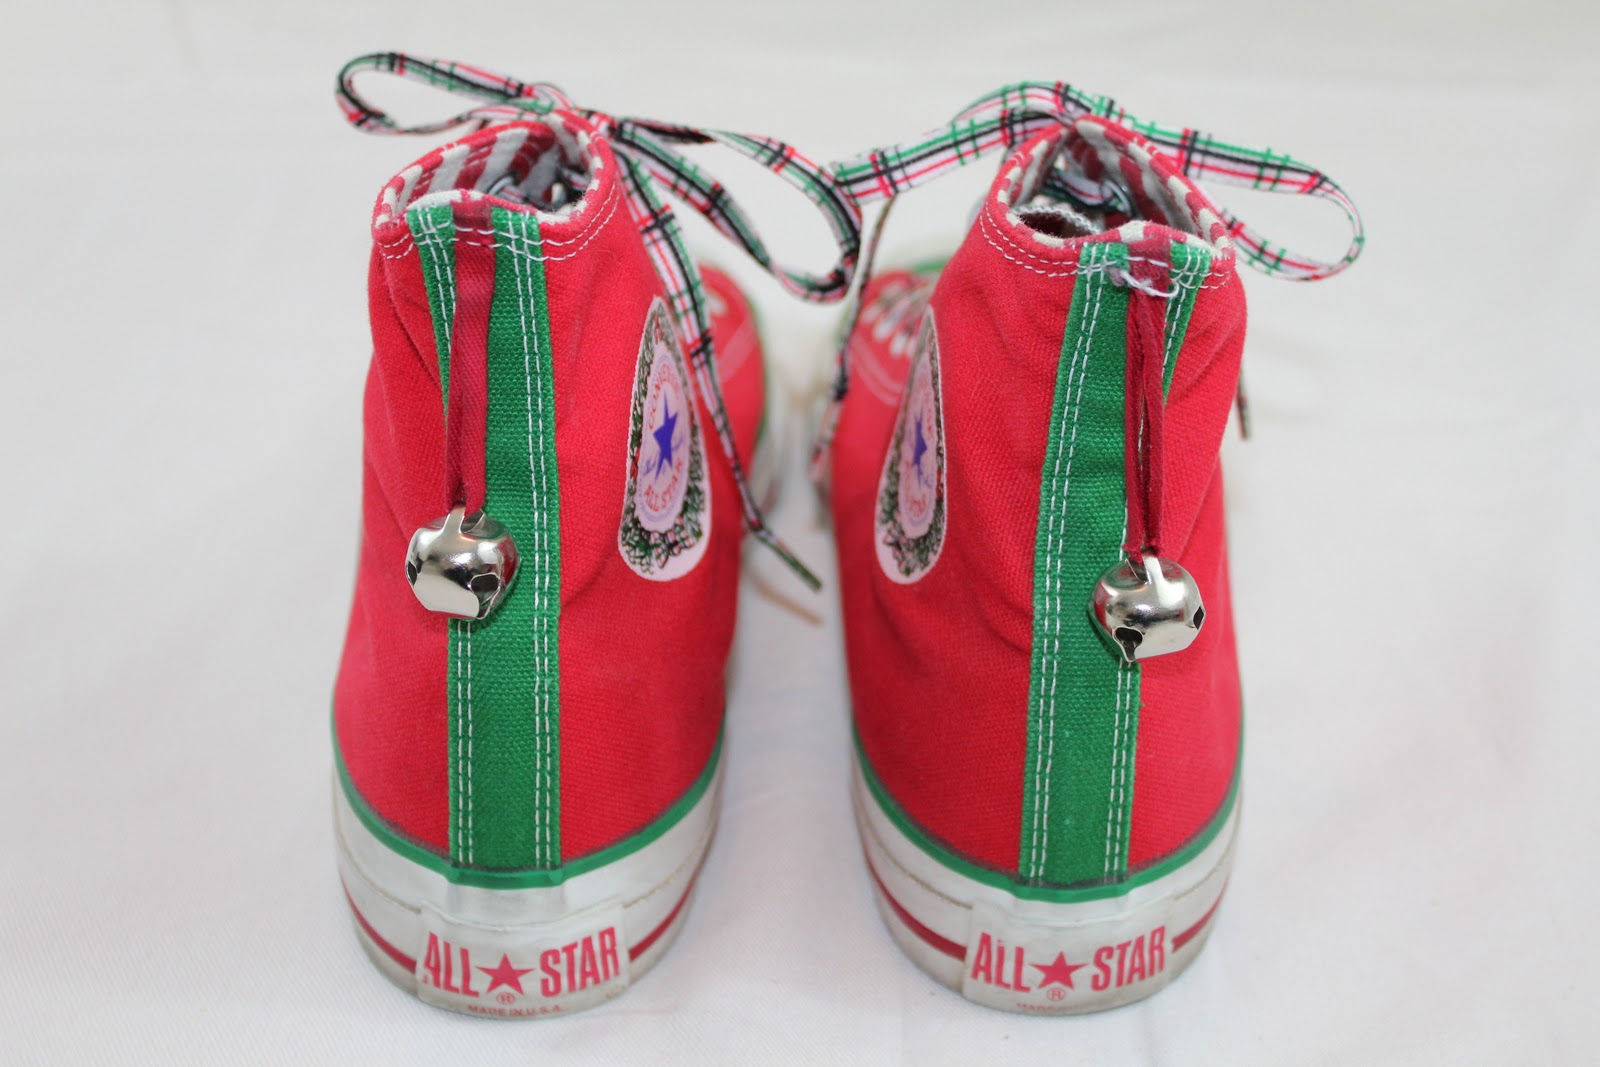 409ade5f4a4 My 1990 s era Converse All Star Chuck Taylor Christmas Jingle Bell edition  sneakers. Been breaking these out every year at Christmas time since I got   em ...